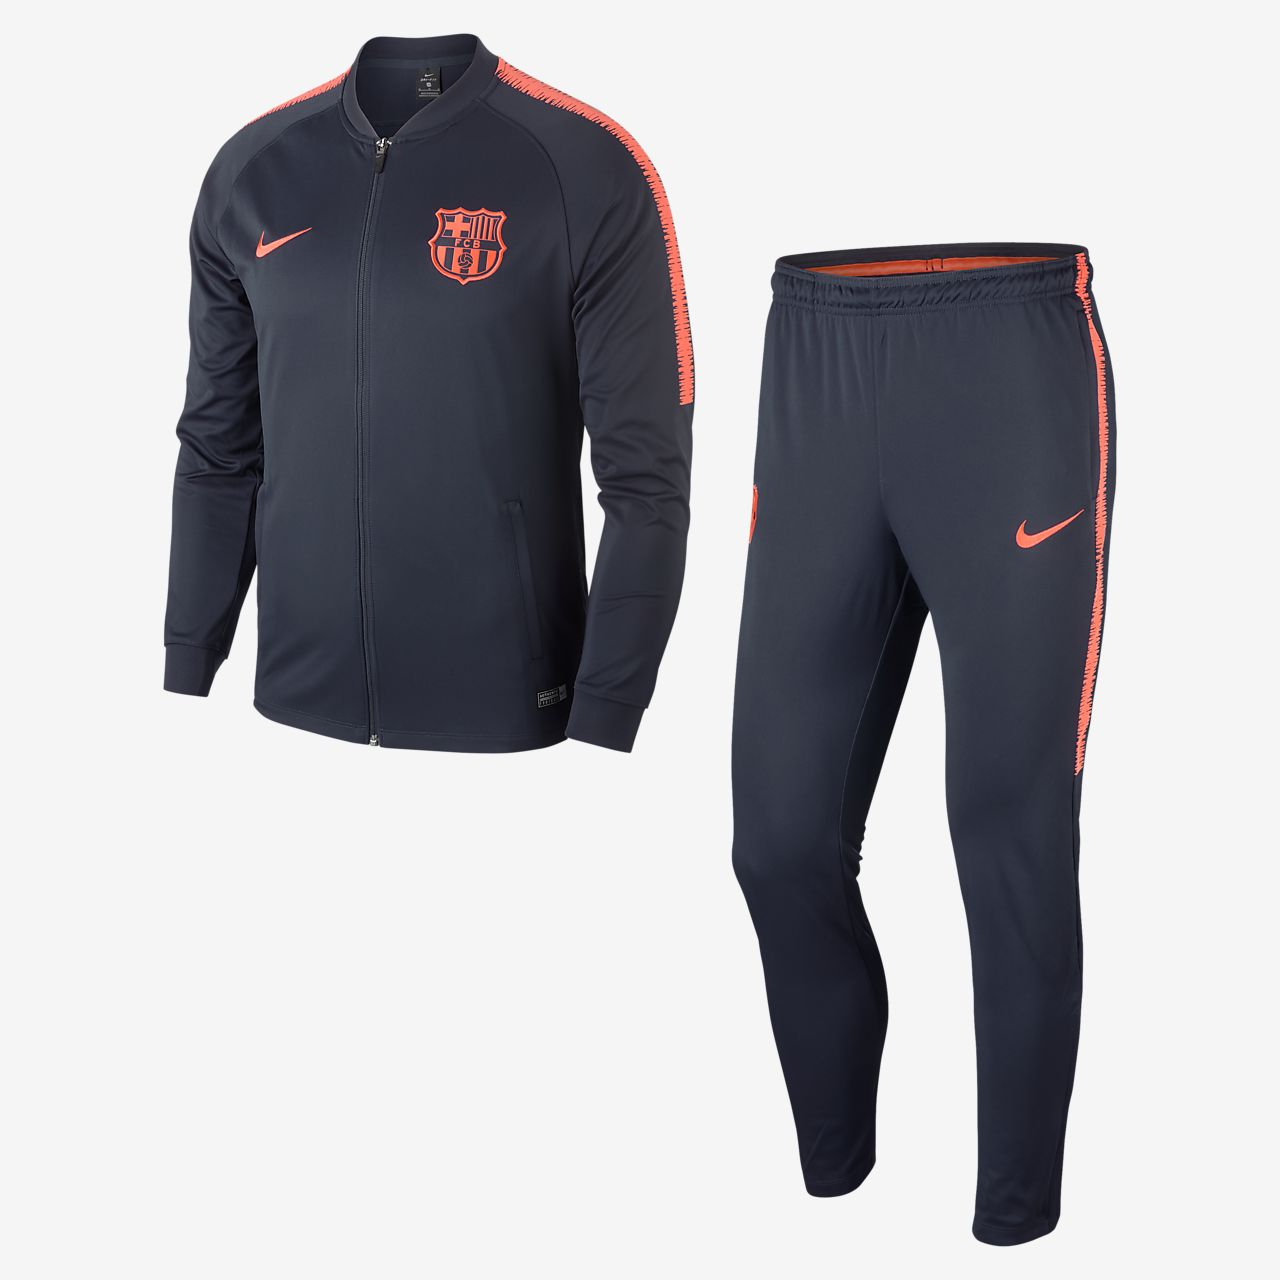 fc barcelona dri fit squad men 39 s football track suit ro. Black Bedroom Furniture Sets. Home Design Ideas